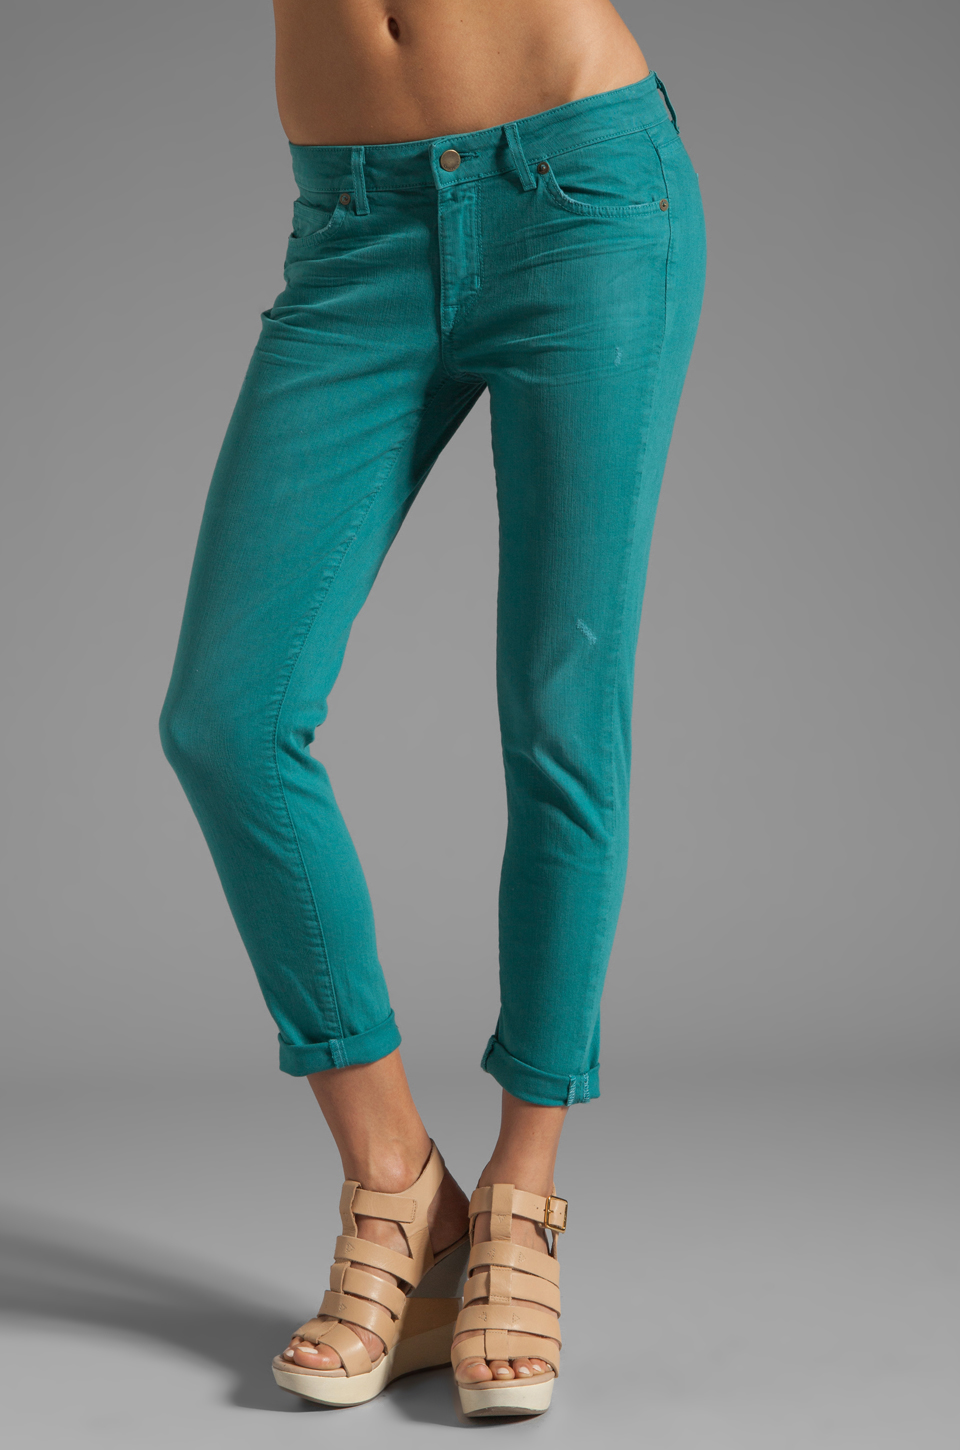 Rich & Skinny Relaxed Ankle Crop in Apollo